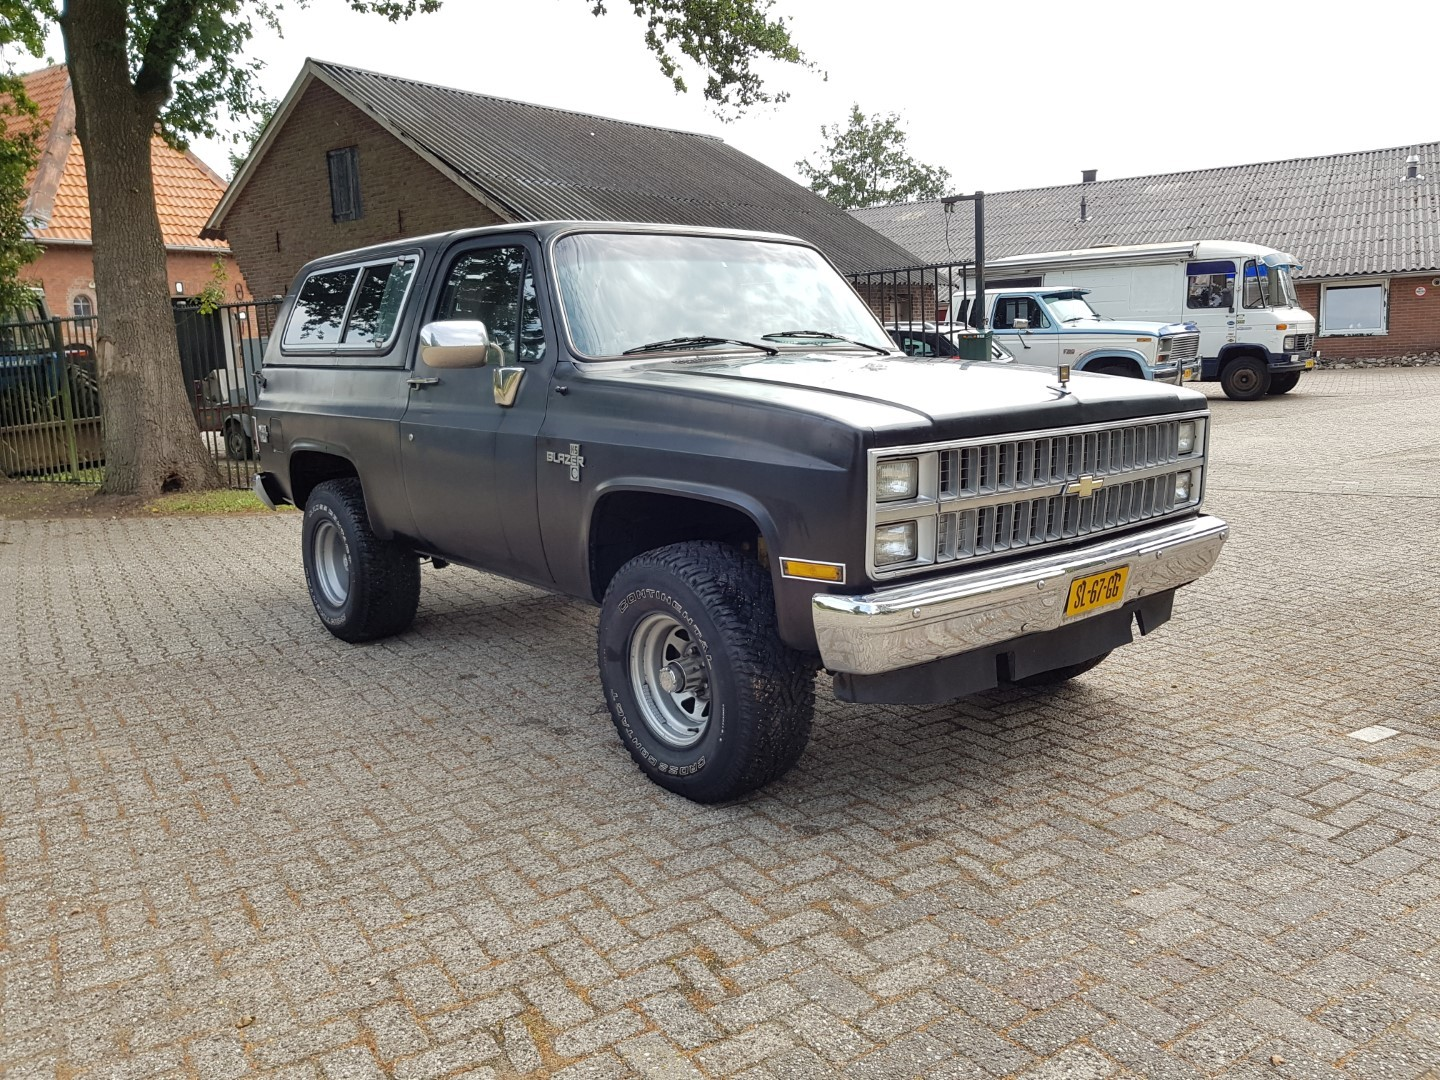 1983 Chevrolet Blazer K5 4x4 350ci V8 Speed Monkey Cars Black 7